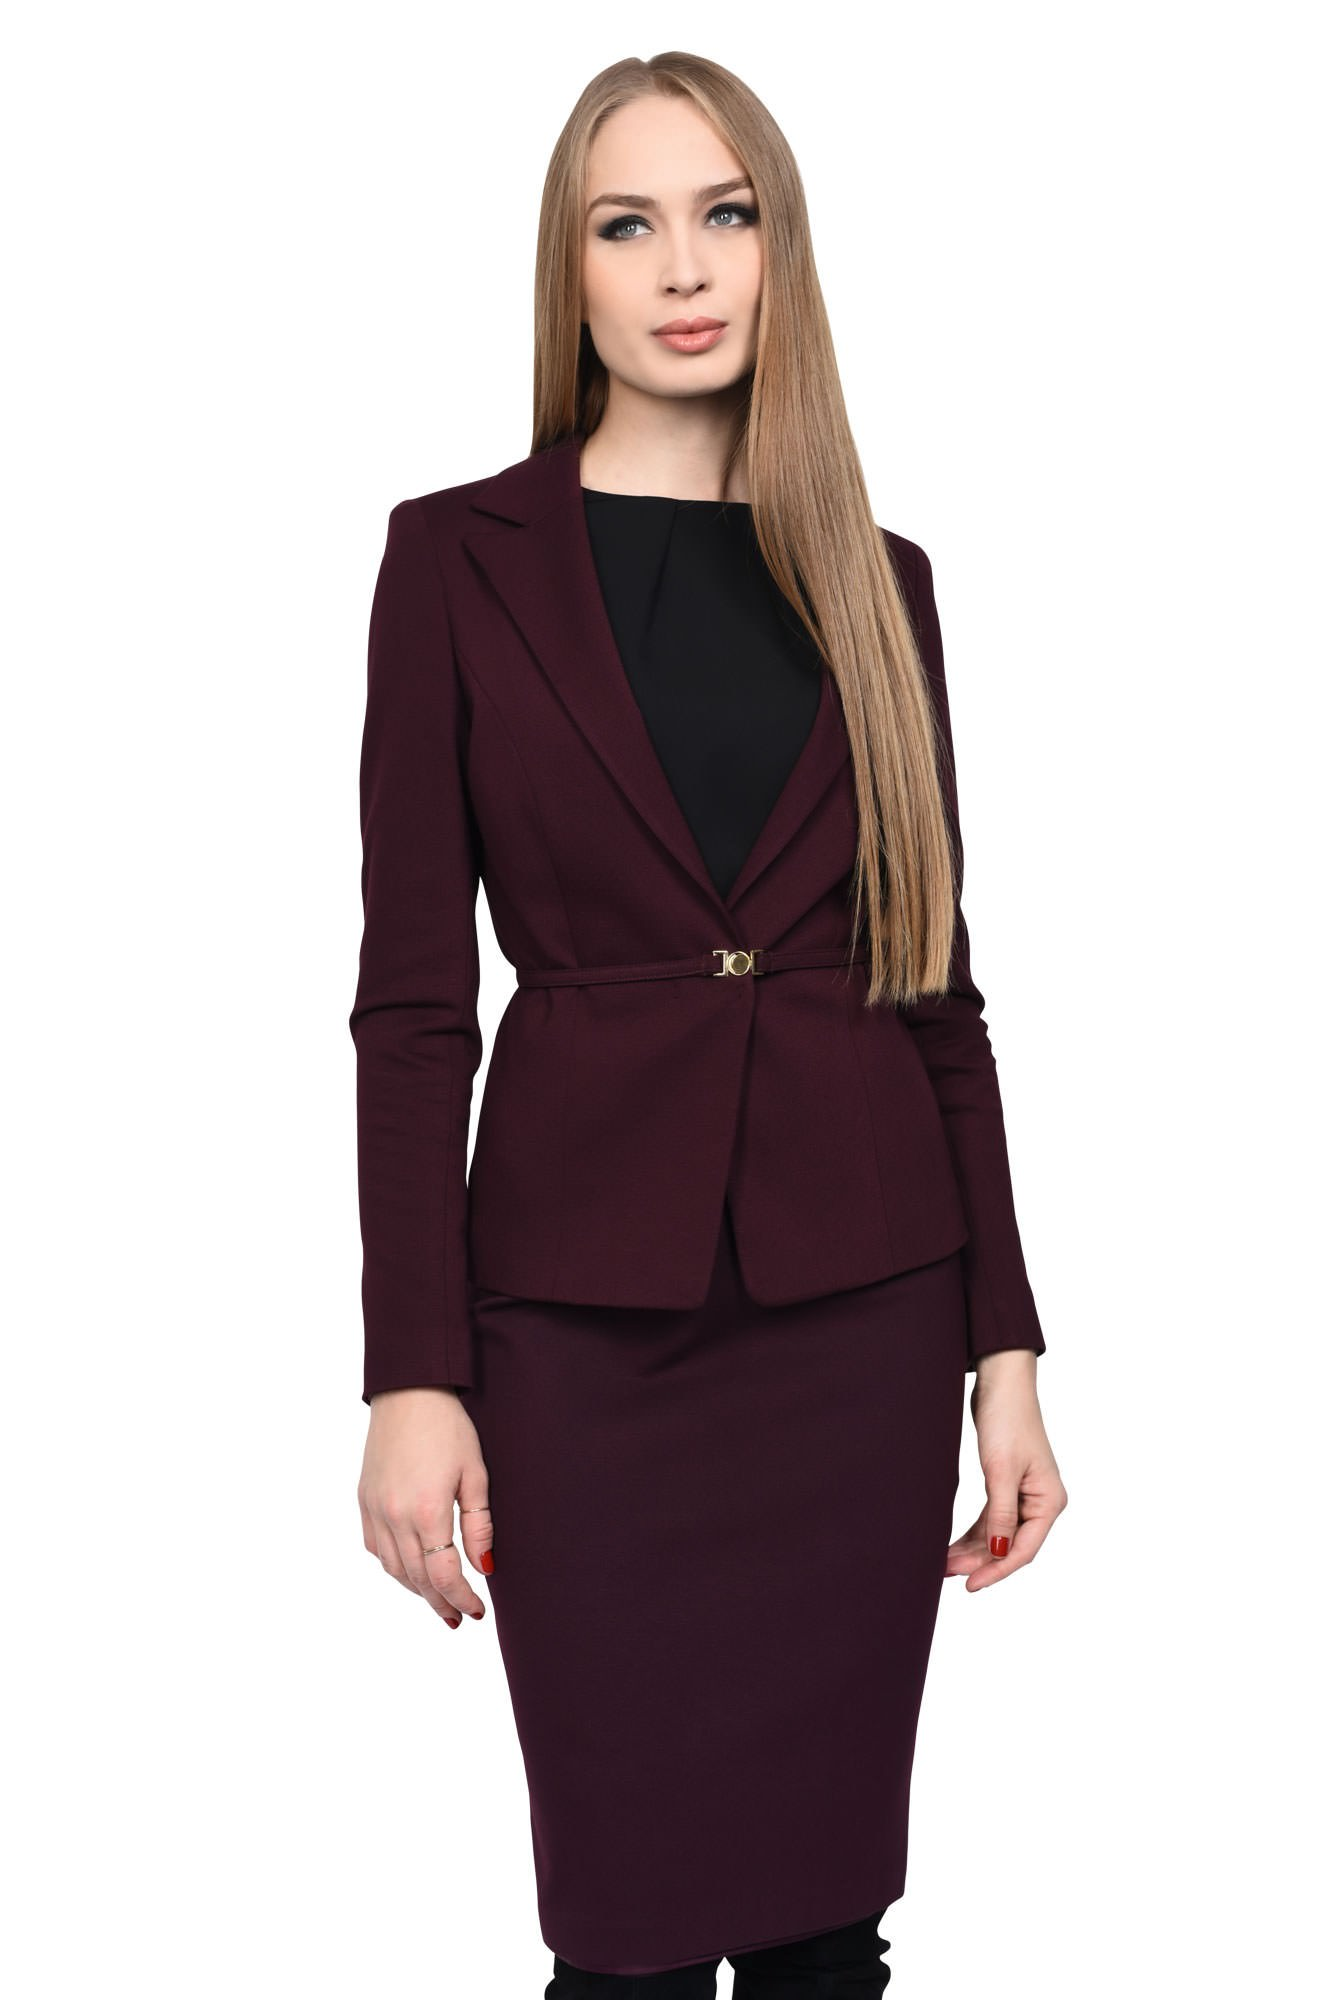 2 - SACOU OFFICE S 109-BURGUNDY